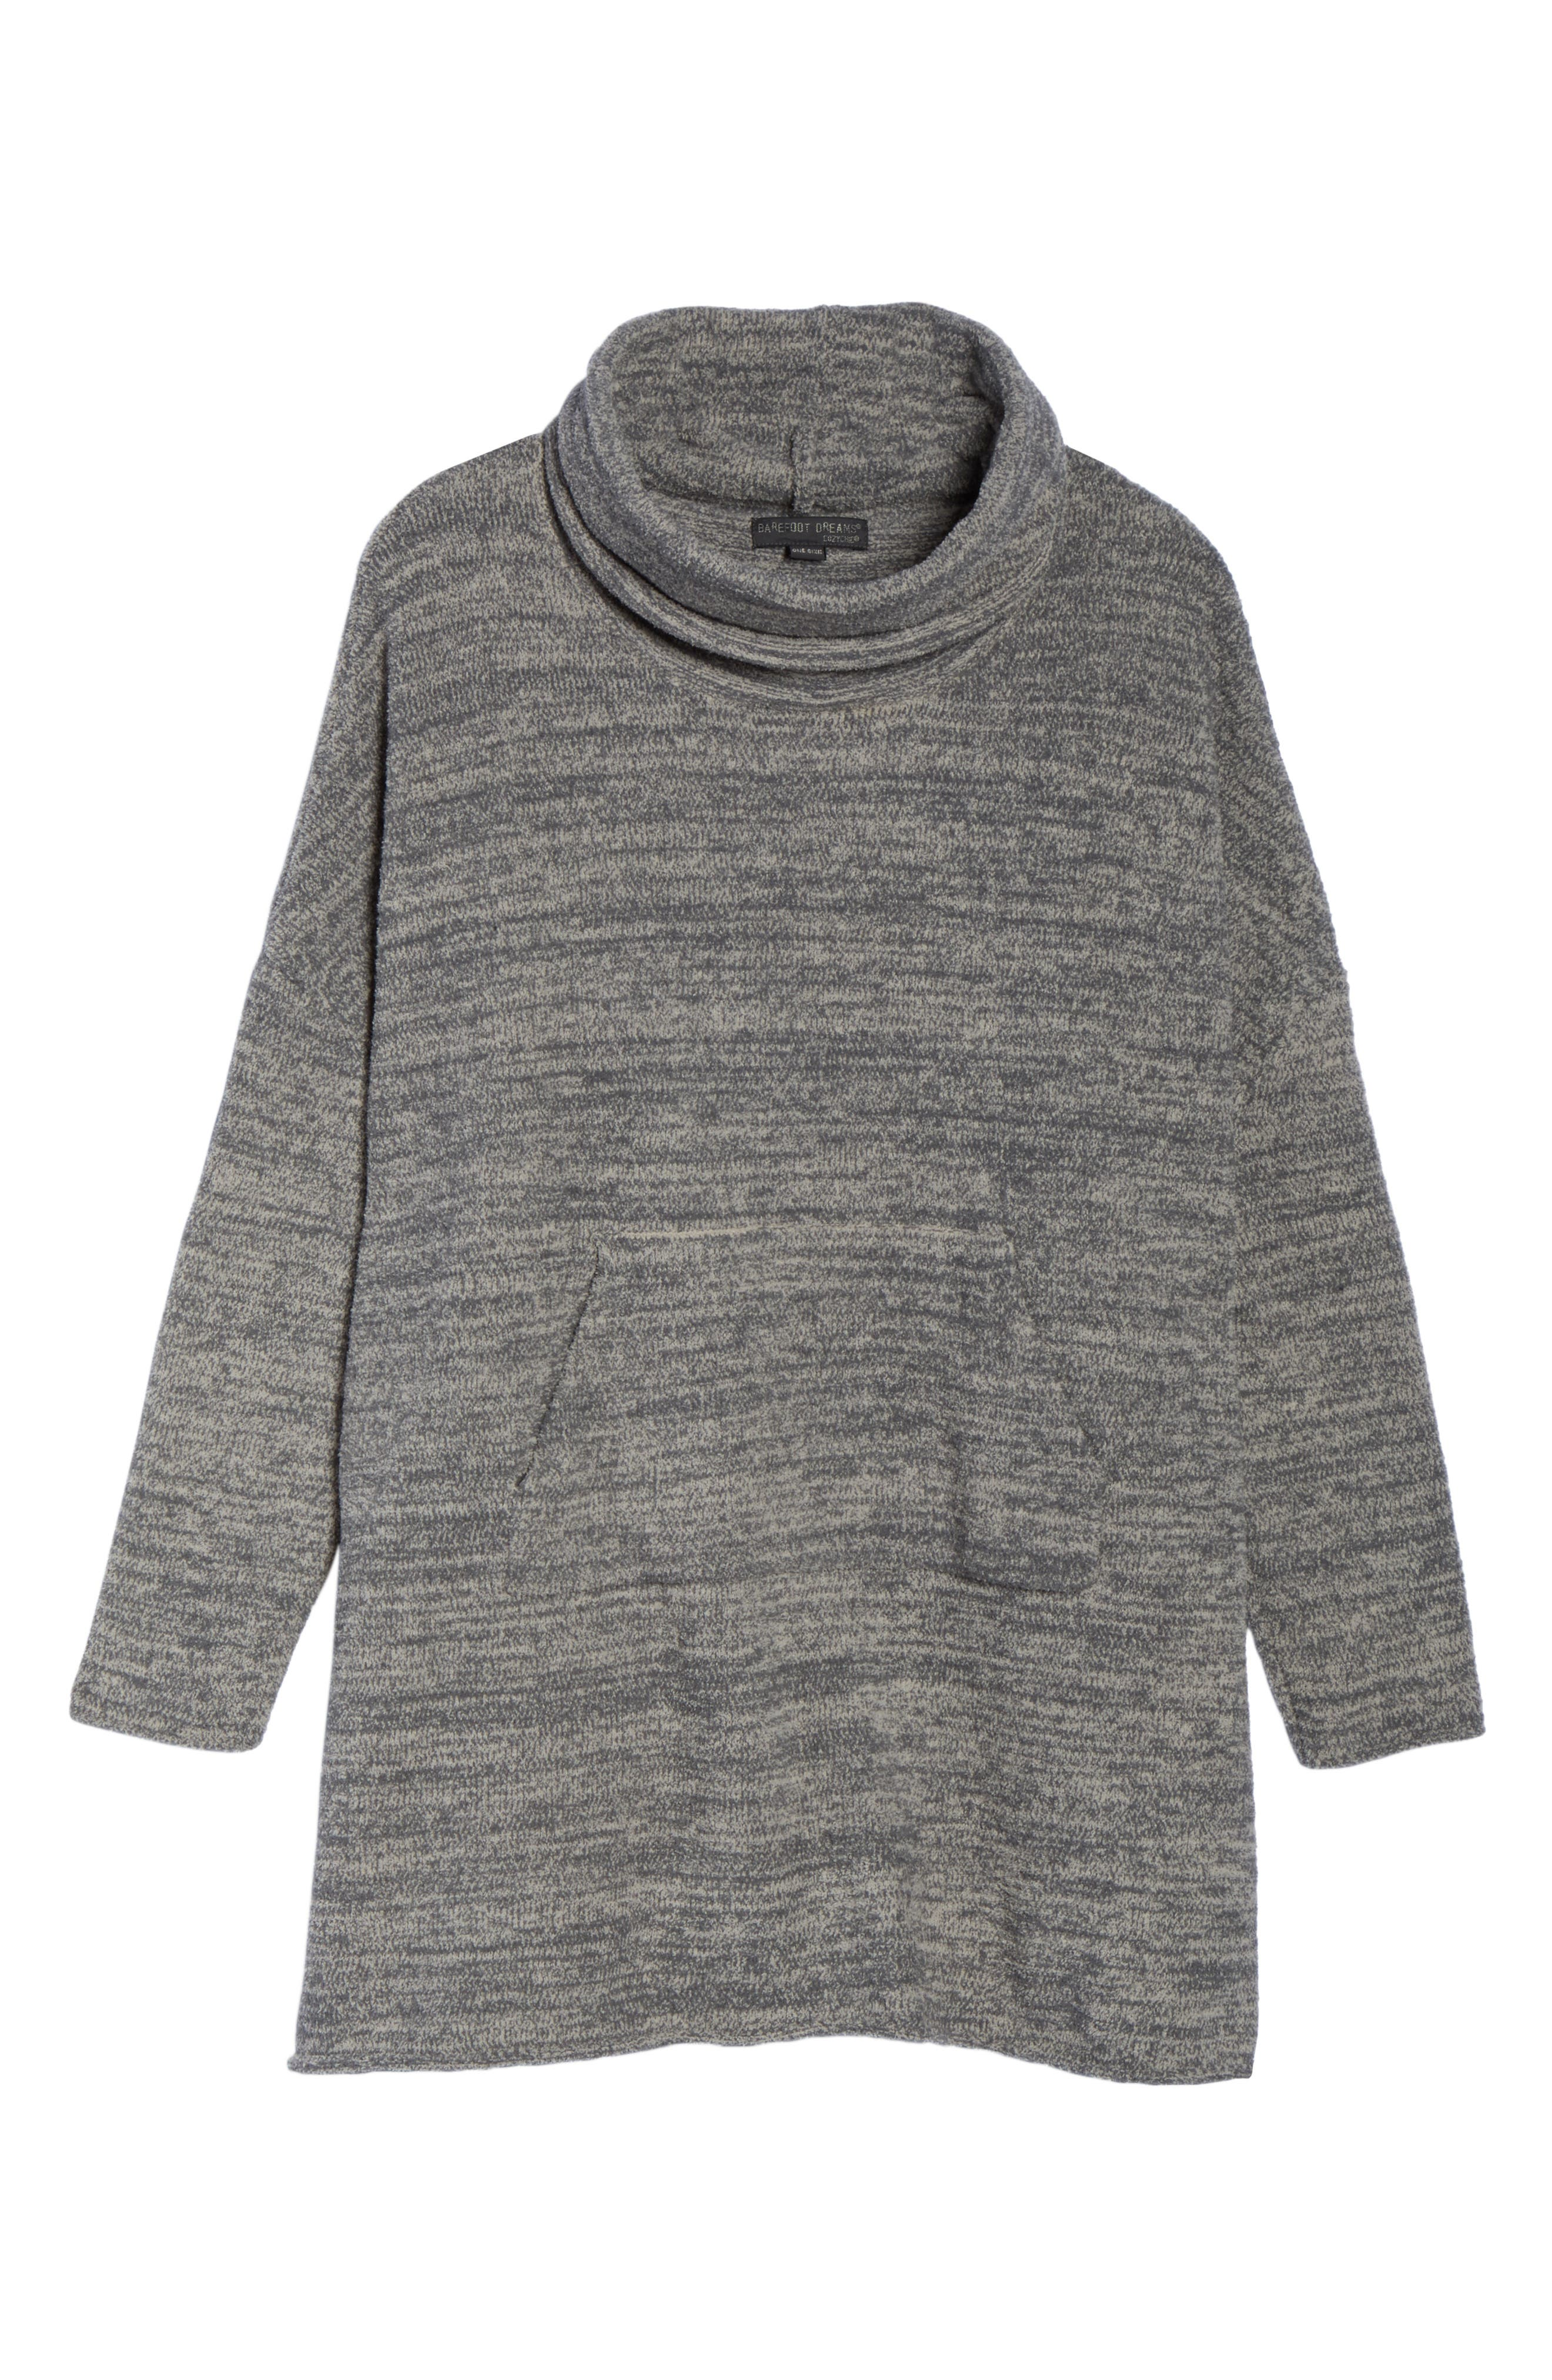 Cozychic<sup>®</sup> Lounge Pullover,                             Alternate thumbnail 6, color,                             GRAPHITE/ STONE HEATHERED